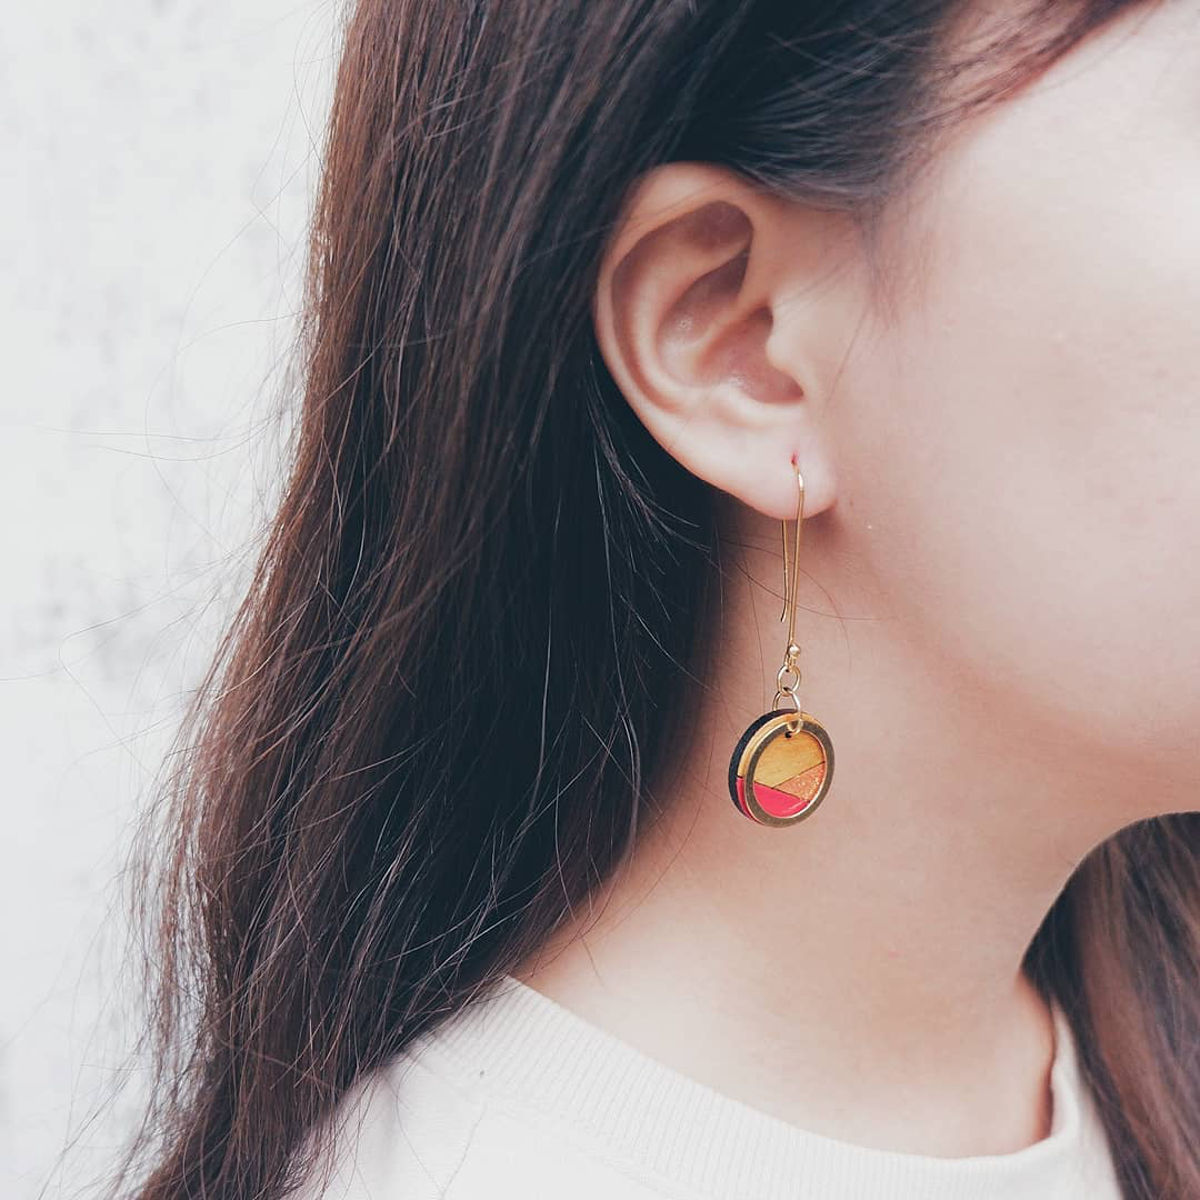 Conture Recycled Wood Gold Dangle Earrings (4 Colours available) by Paguro Upcycle